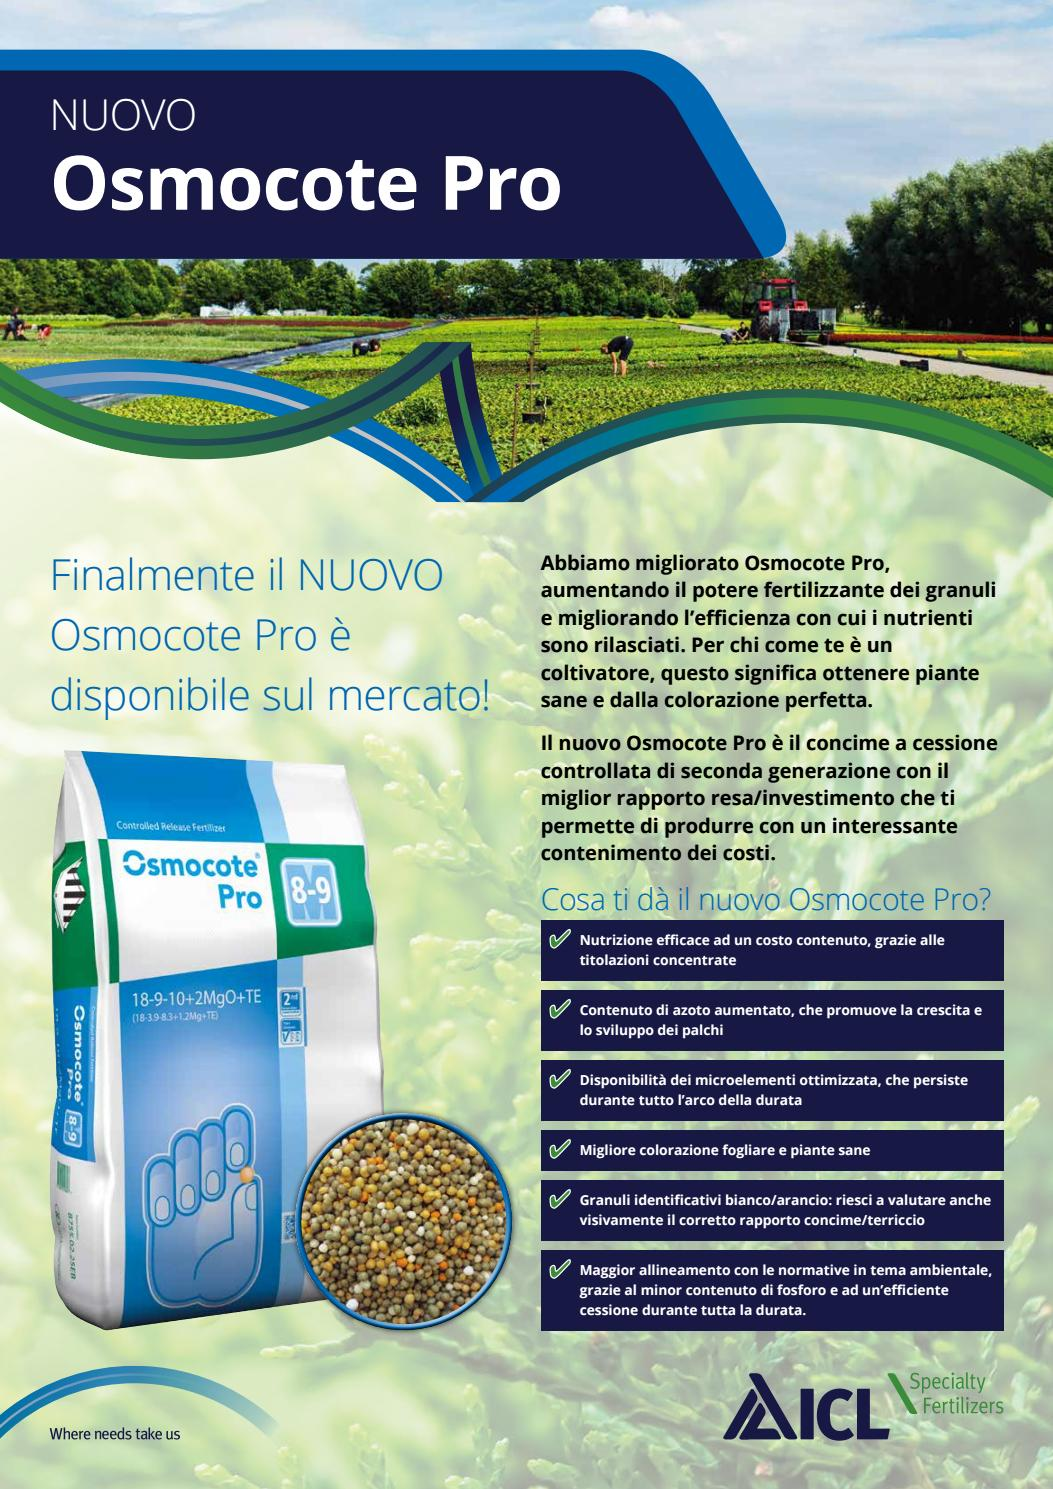 Concime Per Piante In Granuli ita_news_osmocote pro 2017/02 by icl specialty fertilizers